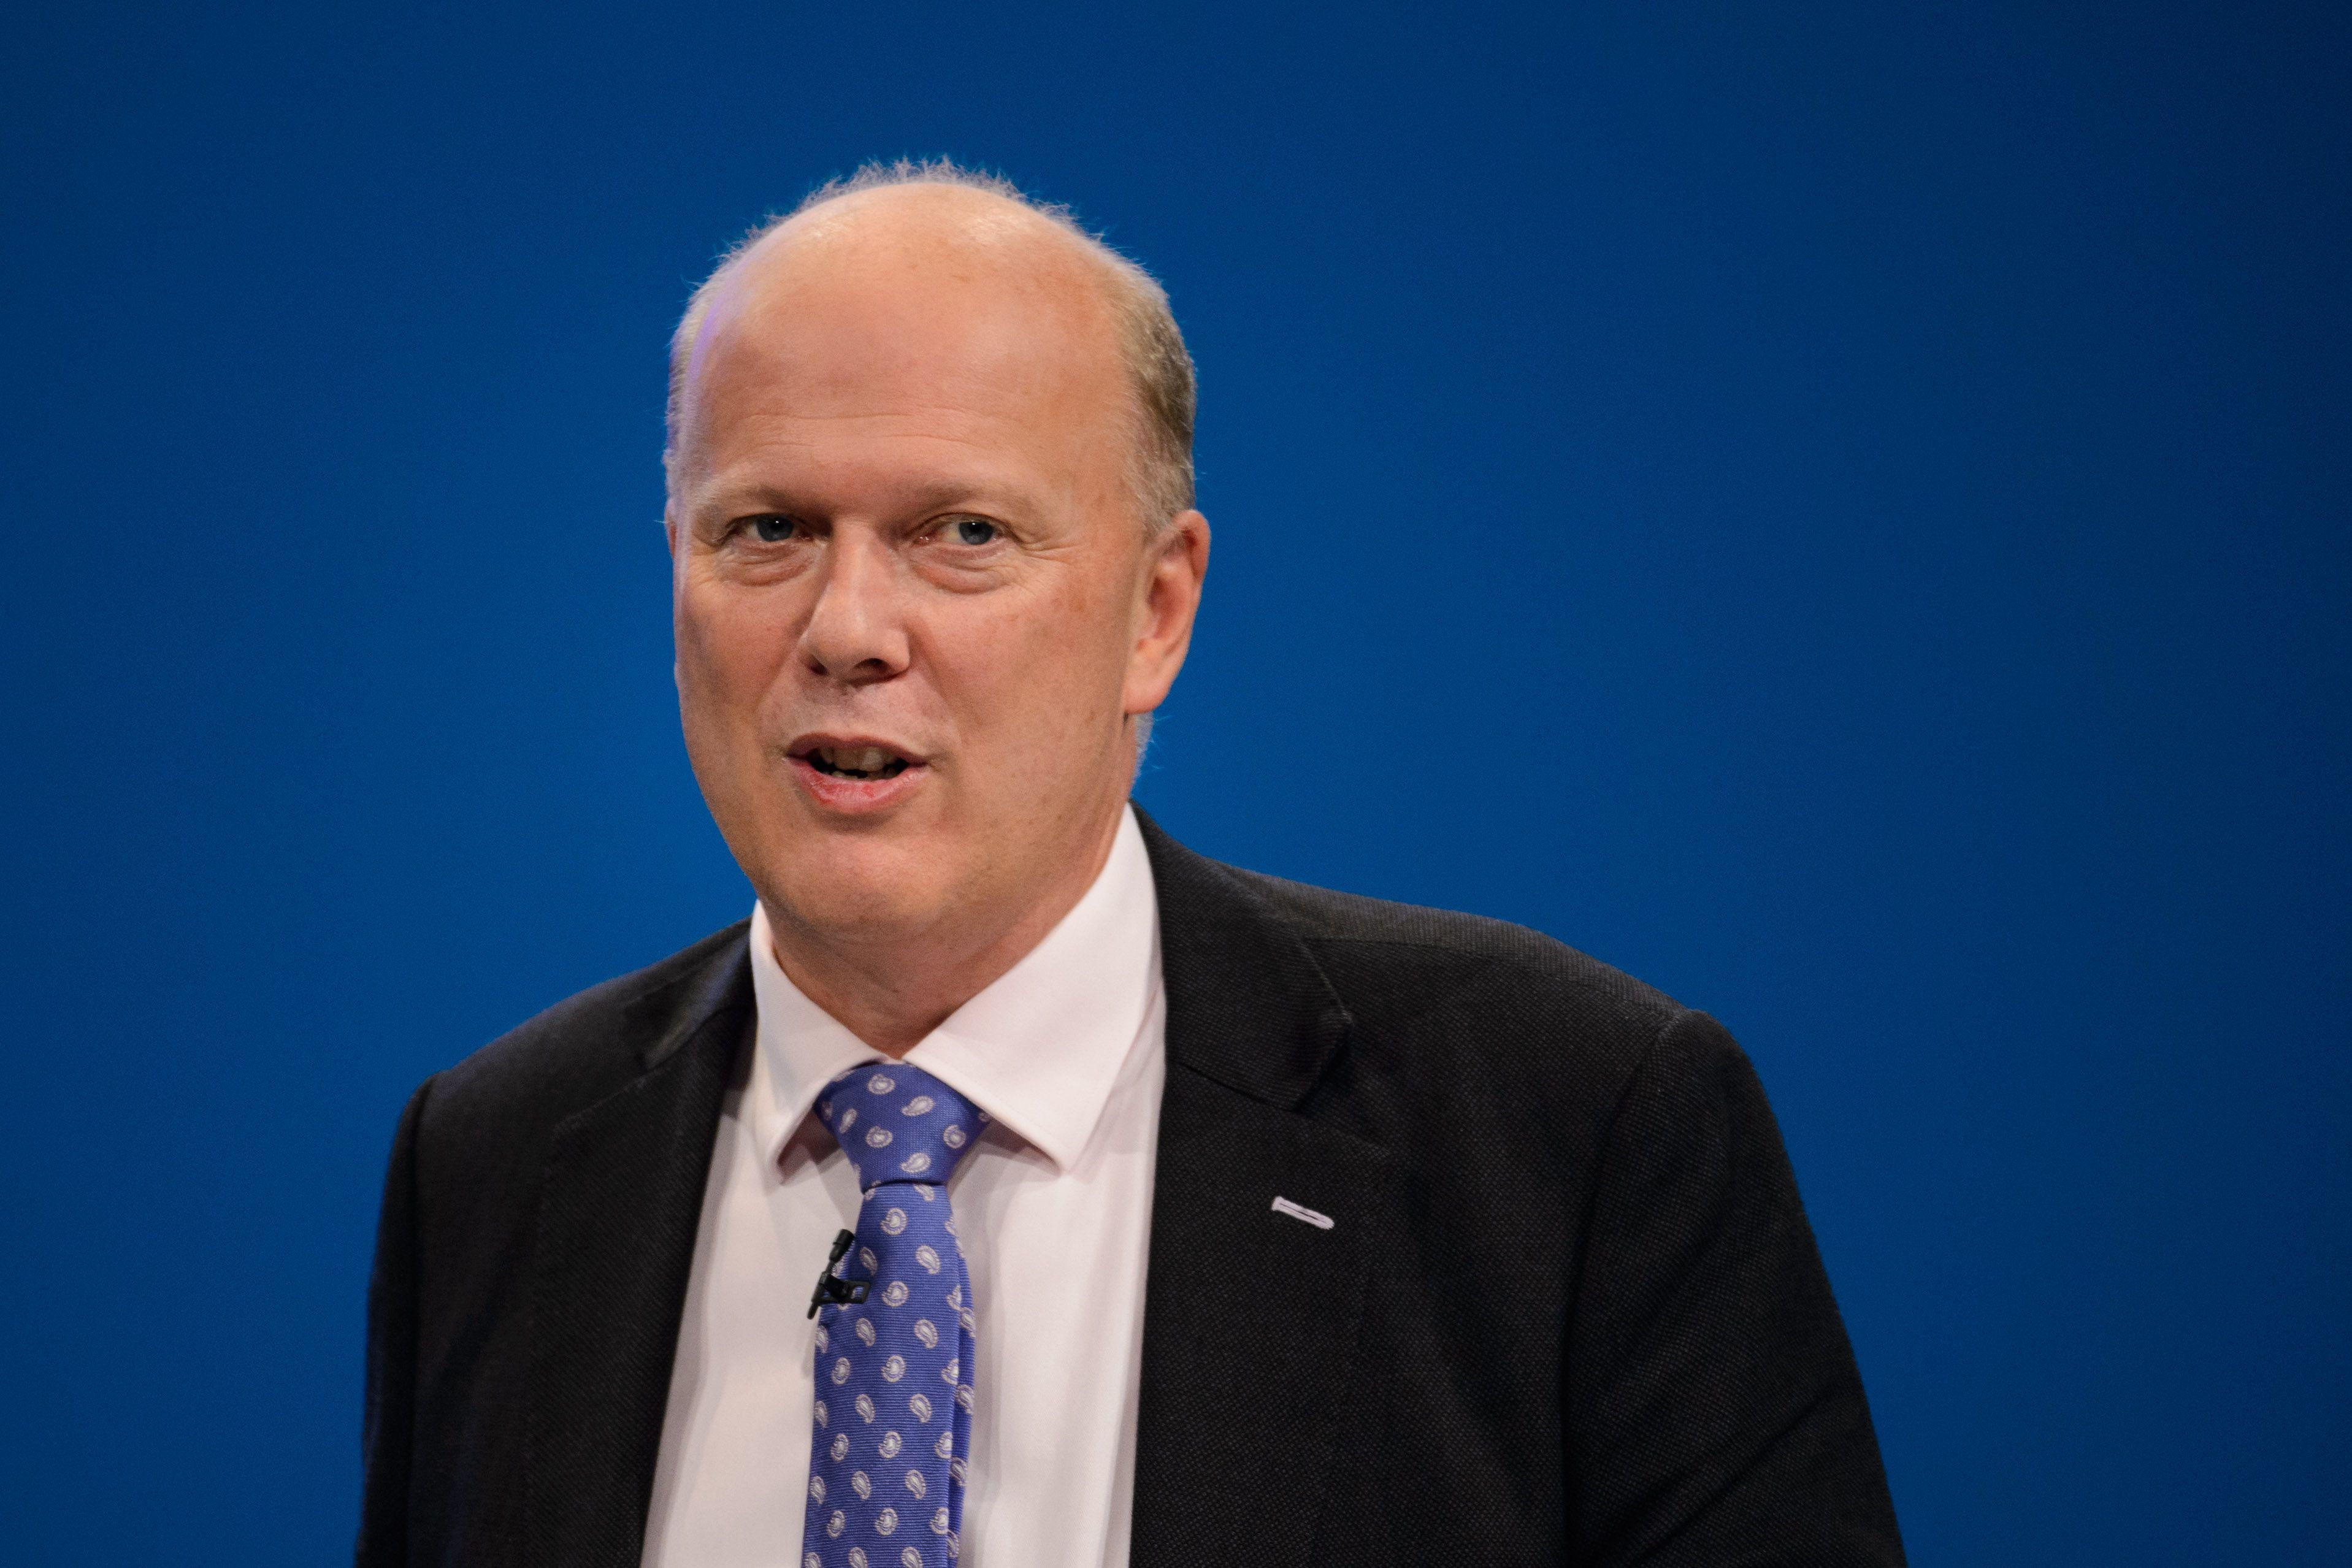 Five Of Chris Grayling's Greatest Hits In